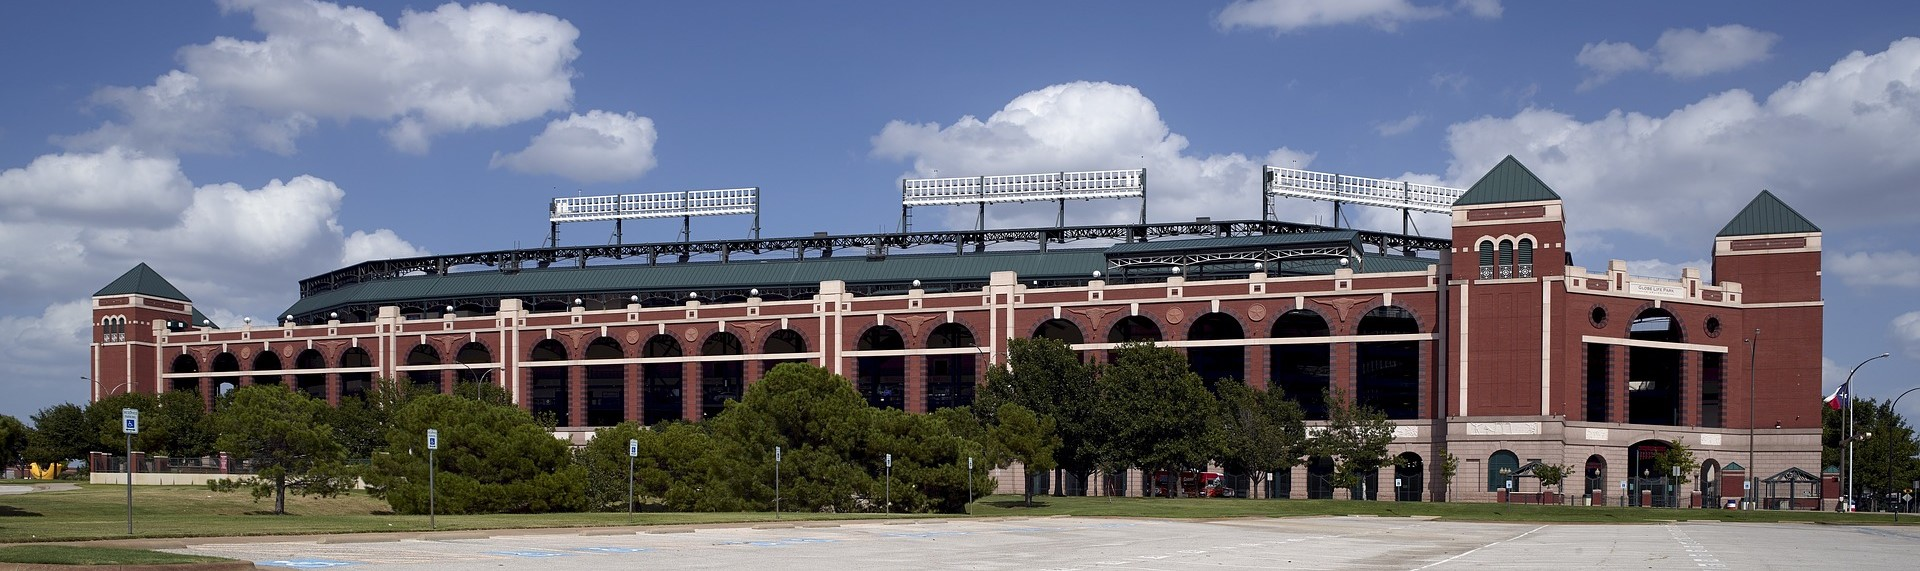 Baseball Stadium in Arlington, Texas | Breast Cancer Car Donations